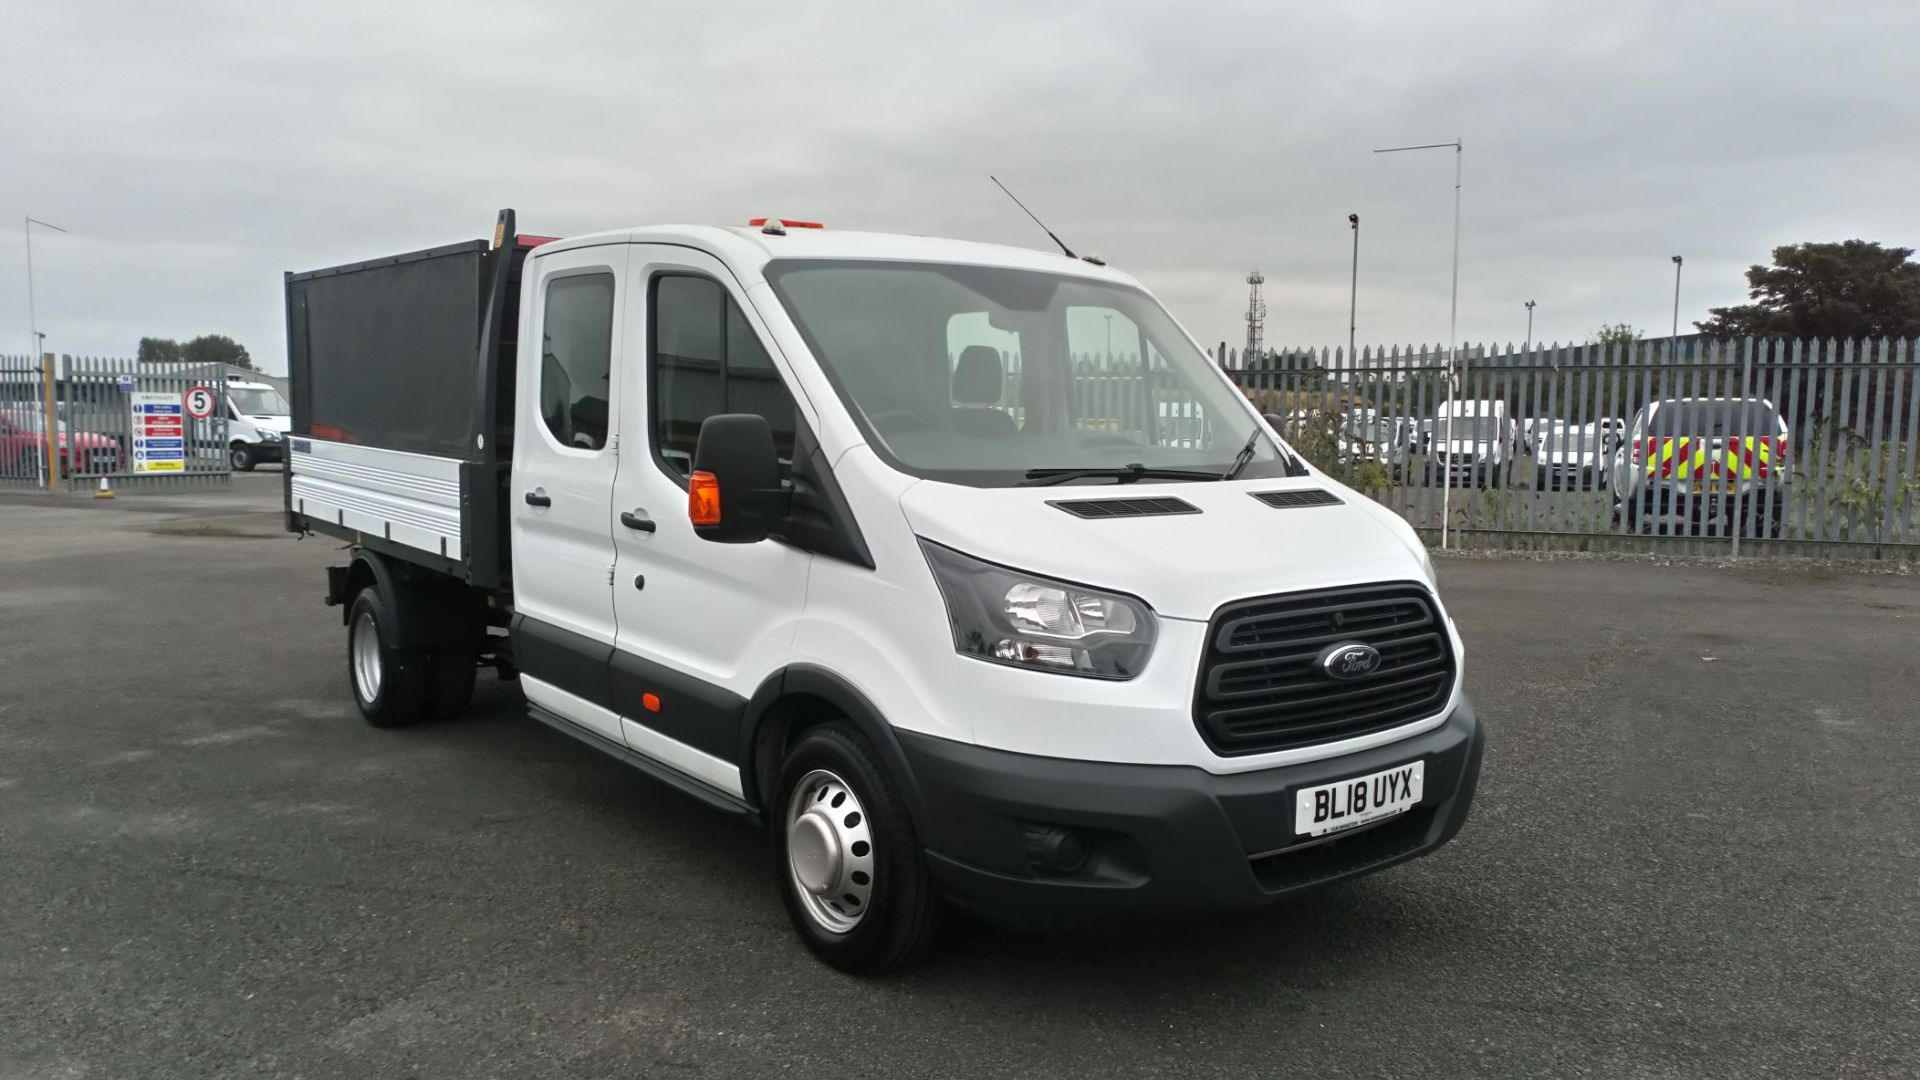 2018 Ford Transit 2.0 Tdci 130Ps H2 Double Cab Tipper (BL18UYX) Image 1